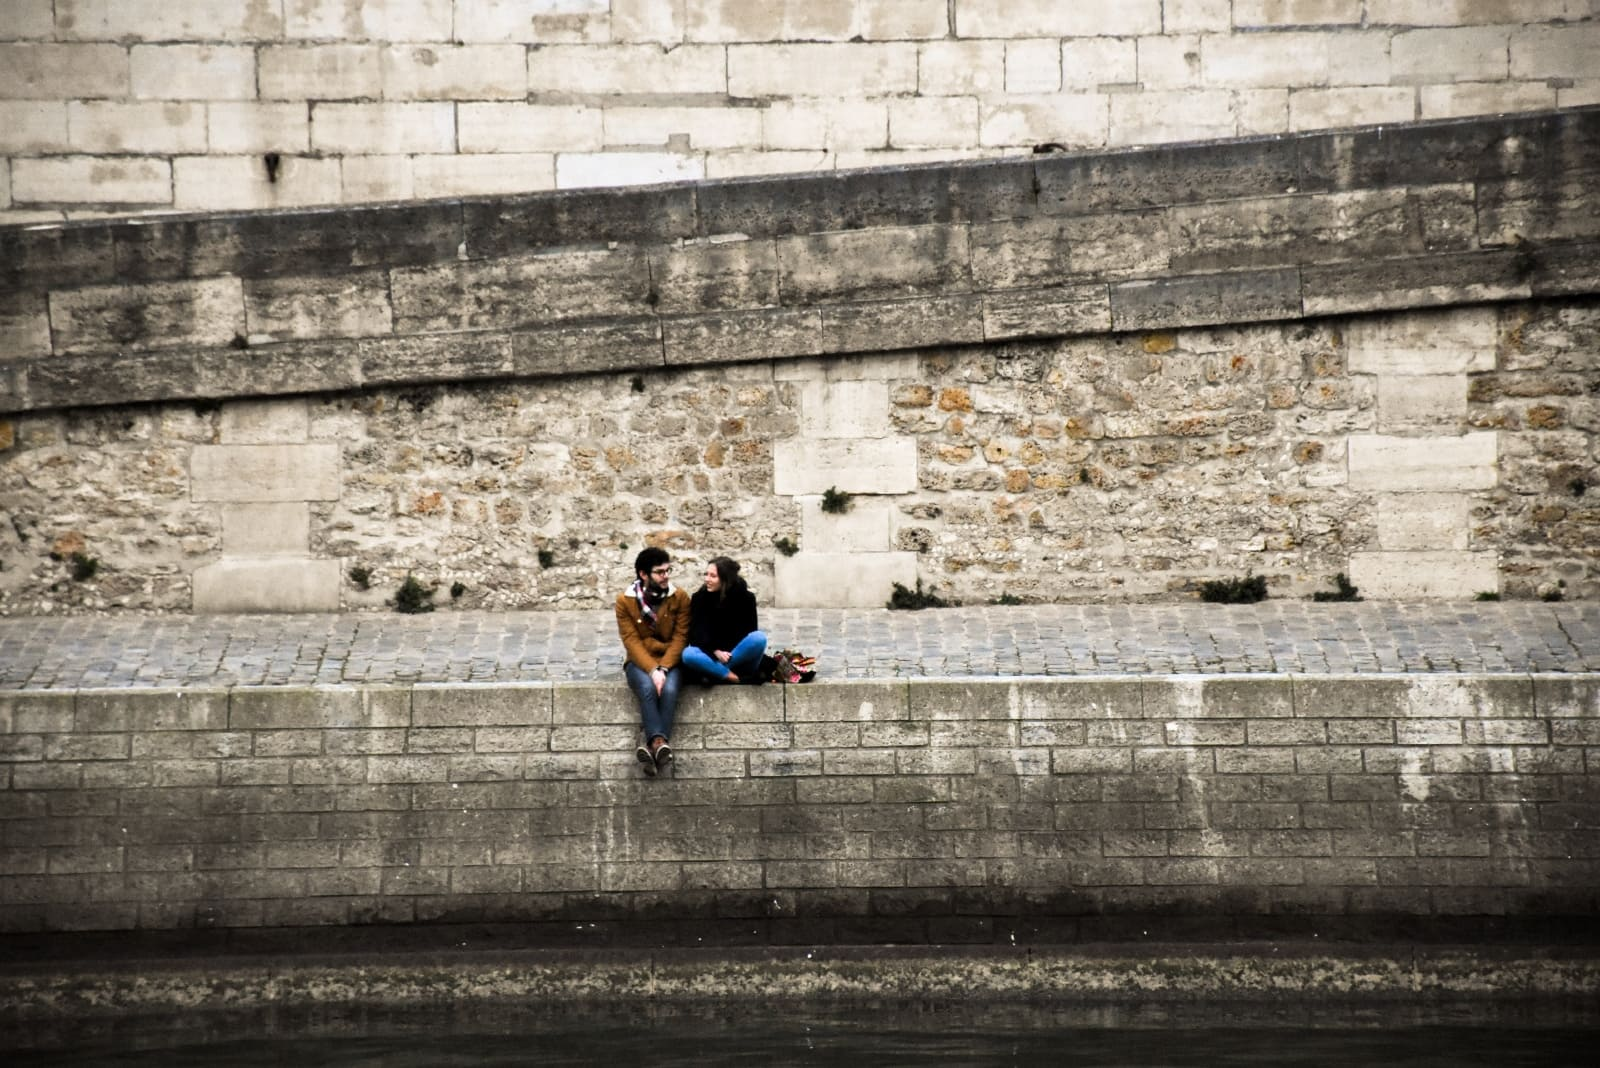 man and woman talking while sitting on concrete surface